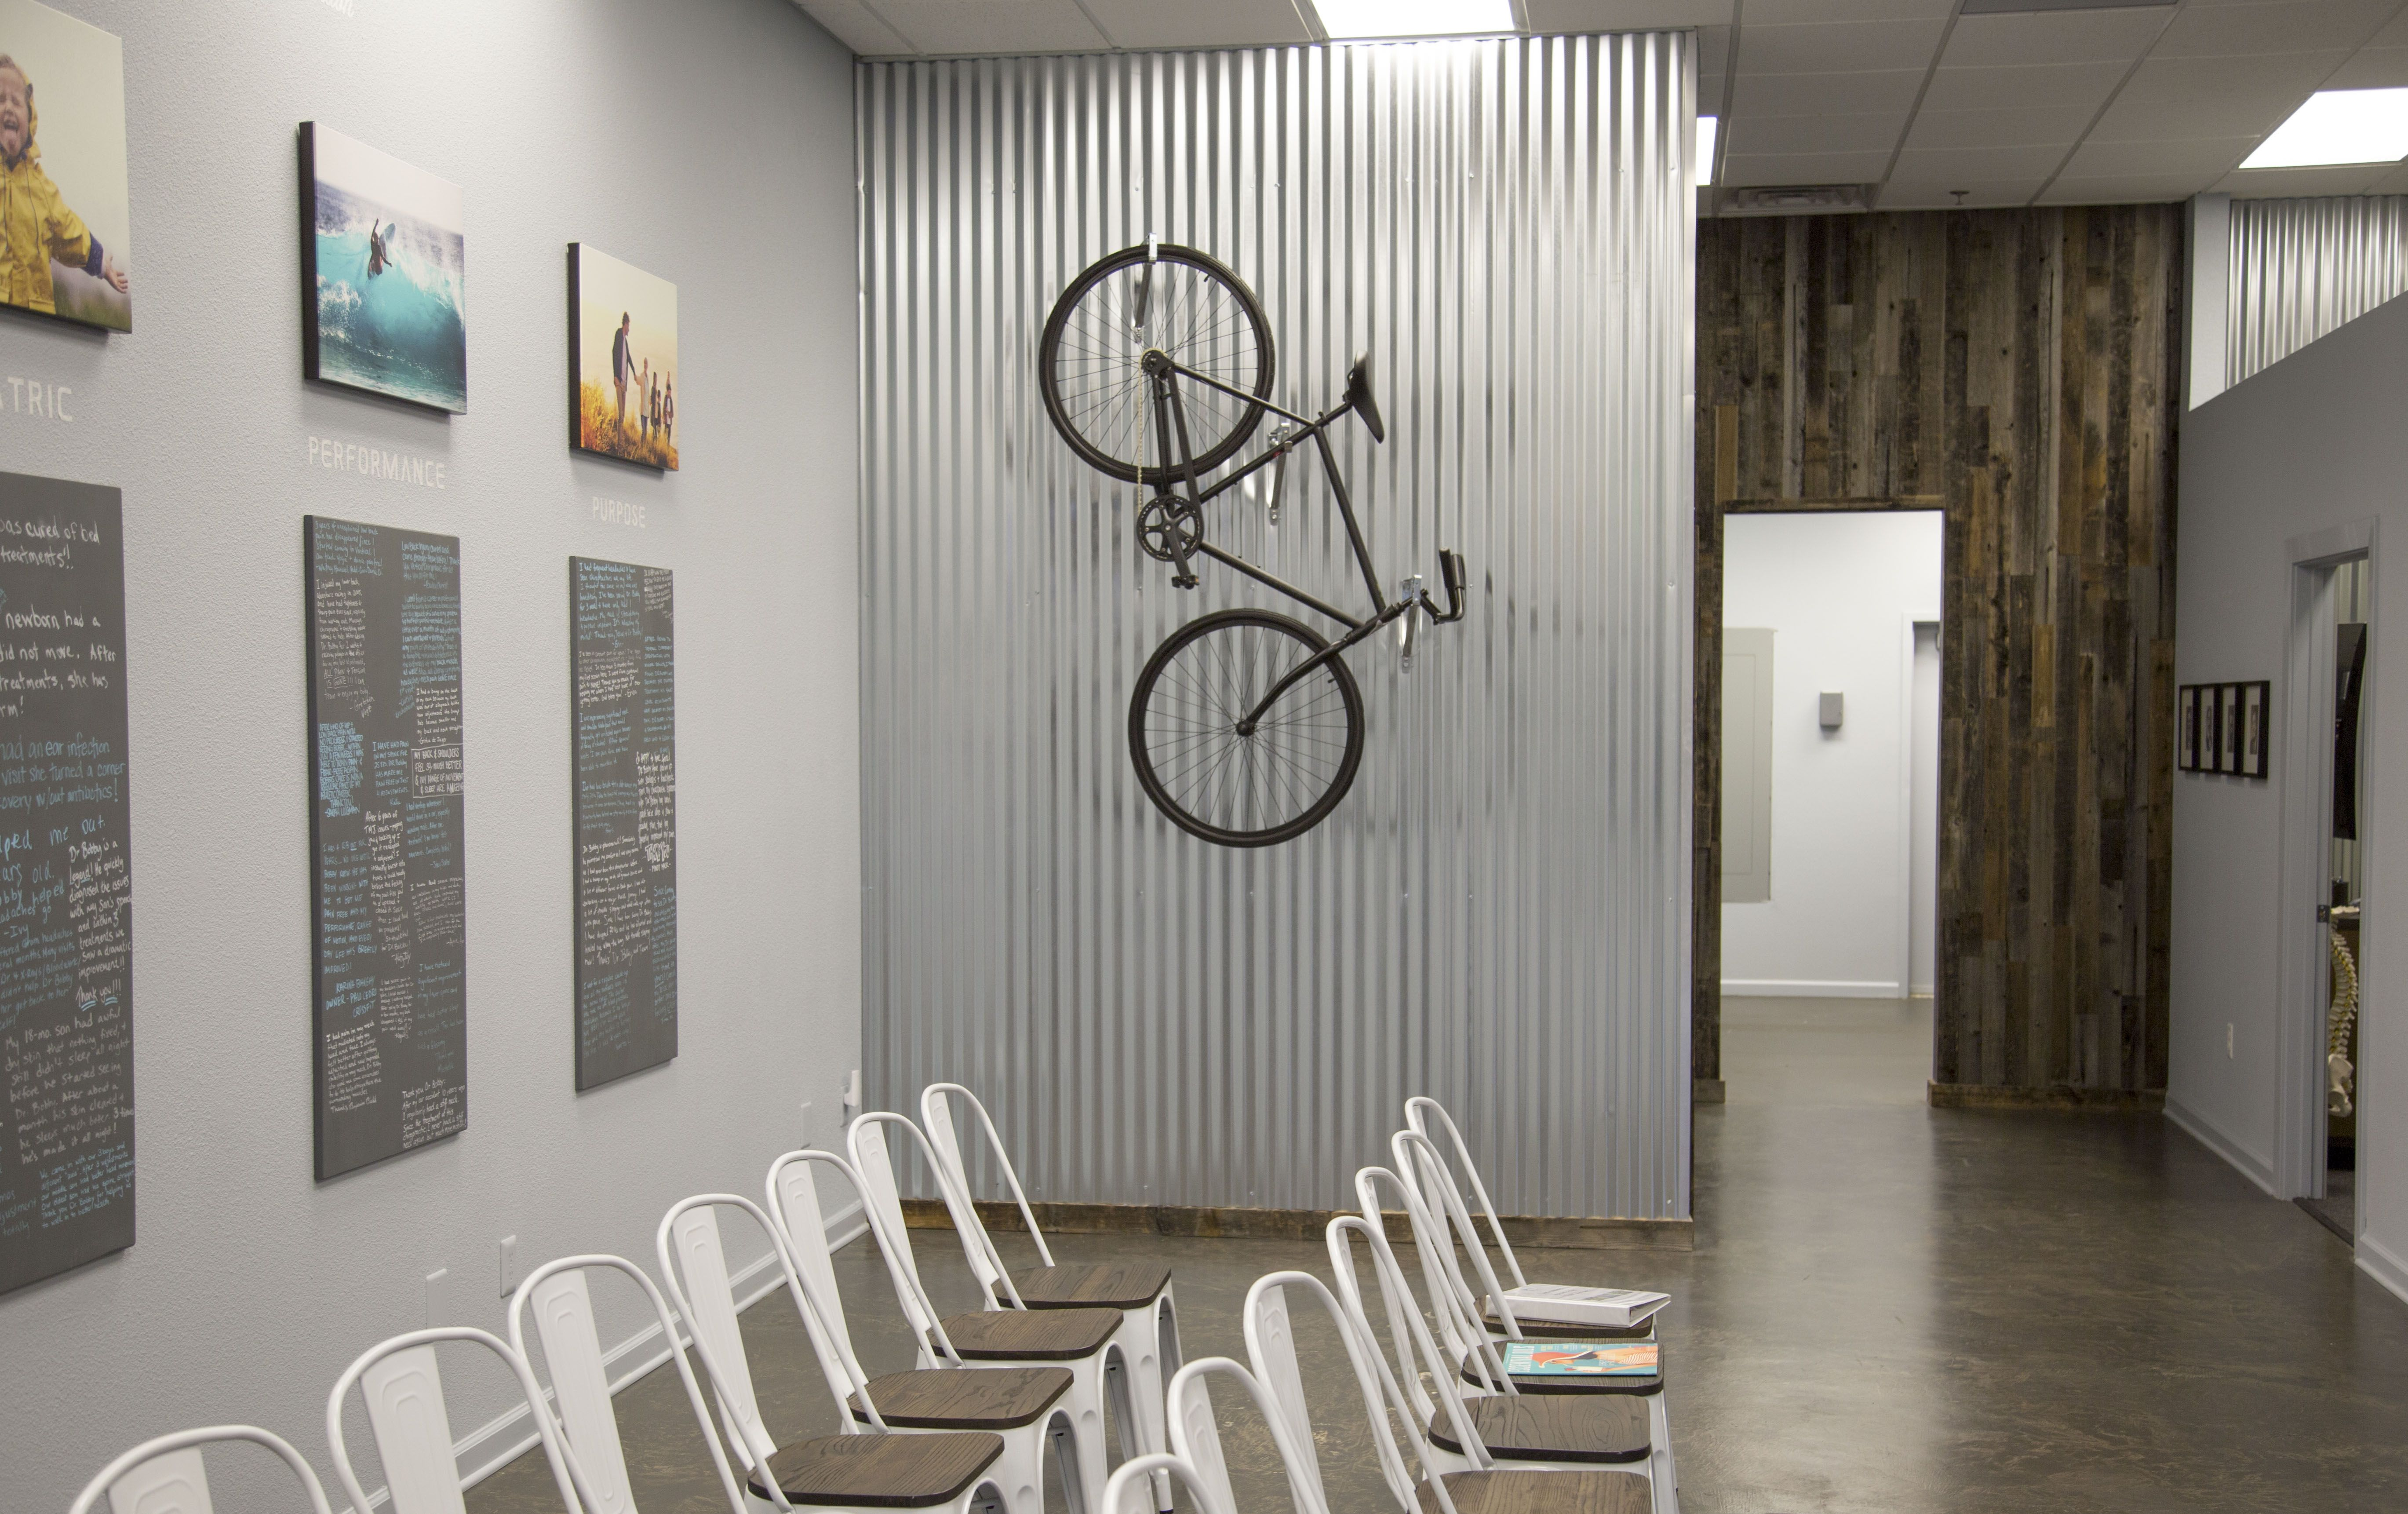 chiropractic office design for chiropractic office. Updated Clinic Photo Showing Bike Mounted On Corrugated Metal Wall. Chiropractic Office DesignChiropractic Design For T